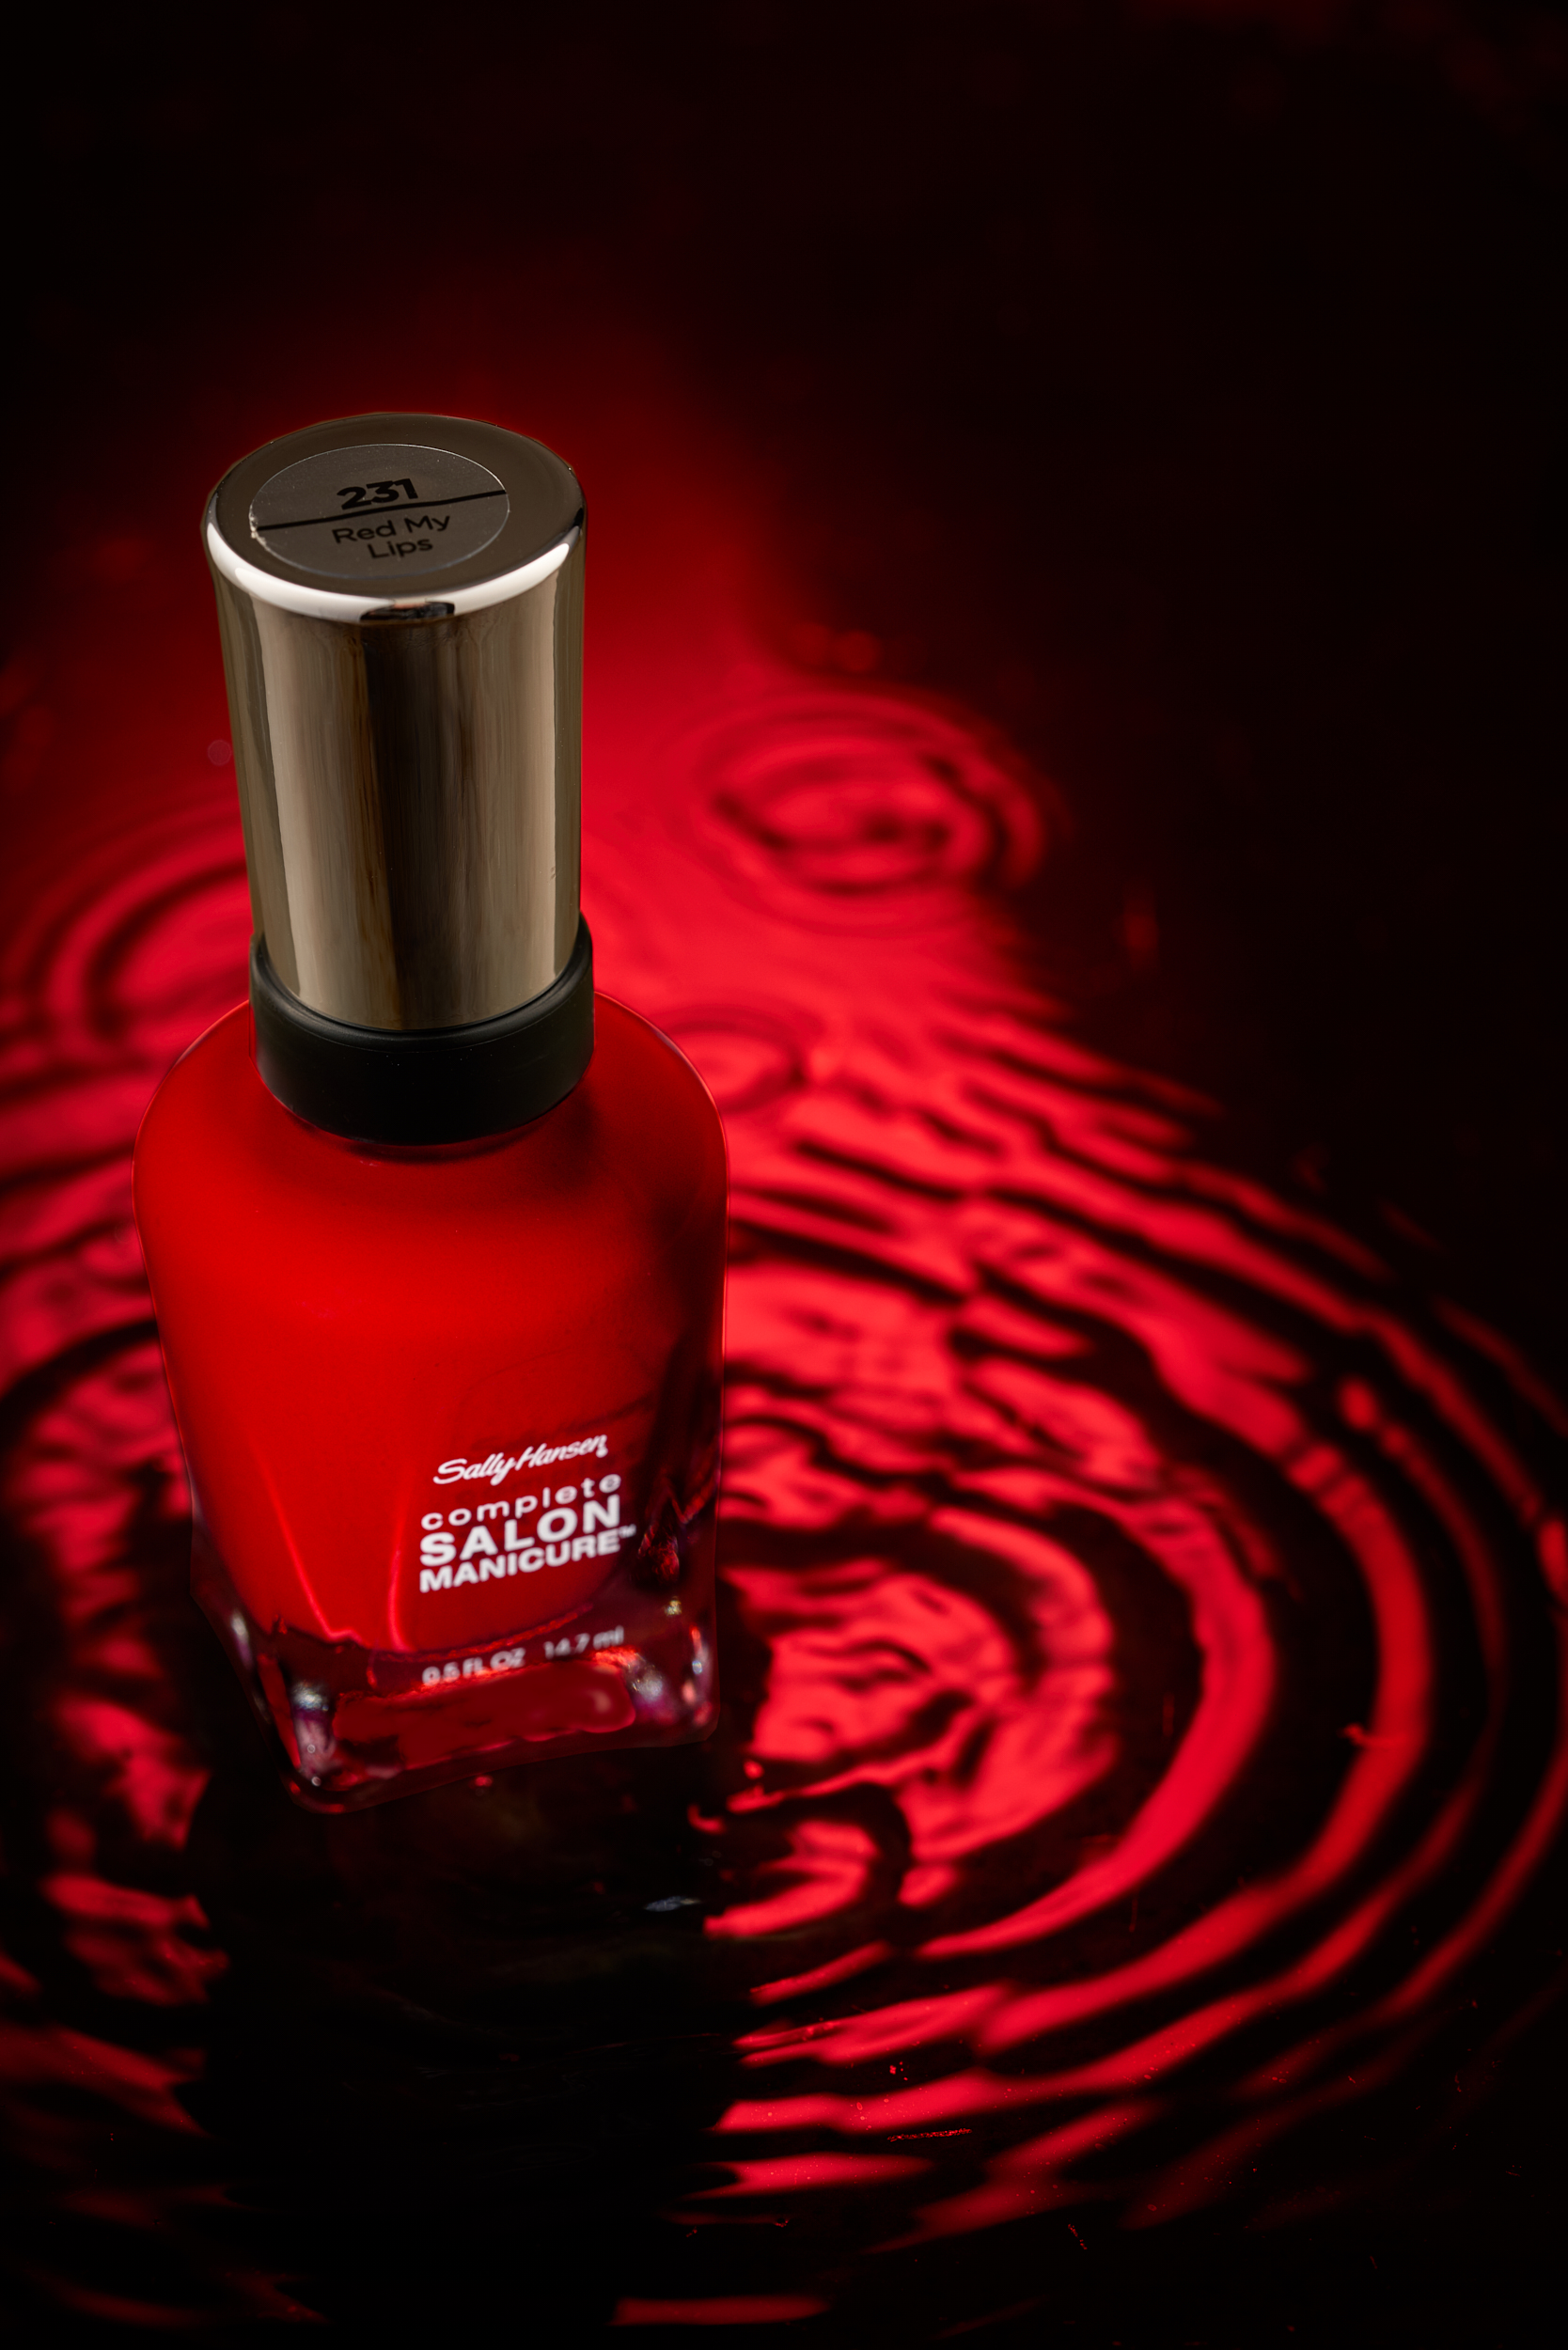 Professional commercial photograph of red nail polish on top of water.